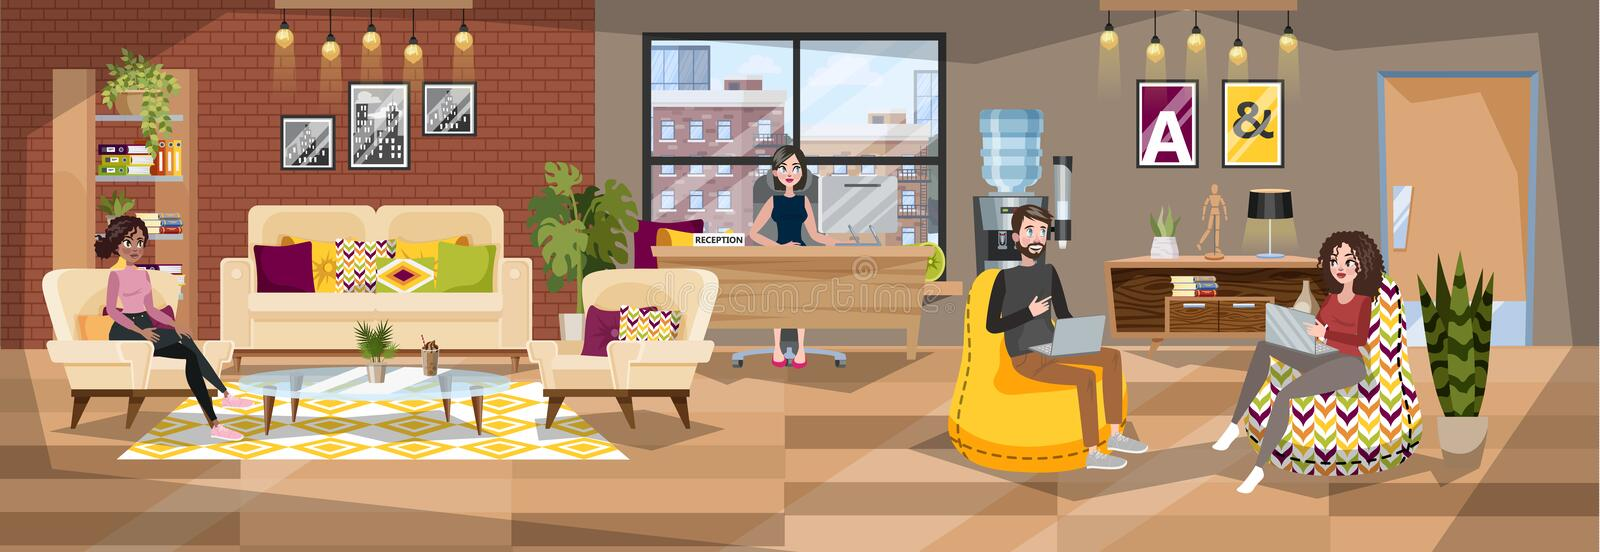 Office building interior. Reception room with administrator royalty free illustration